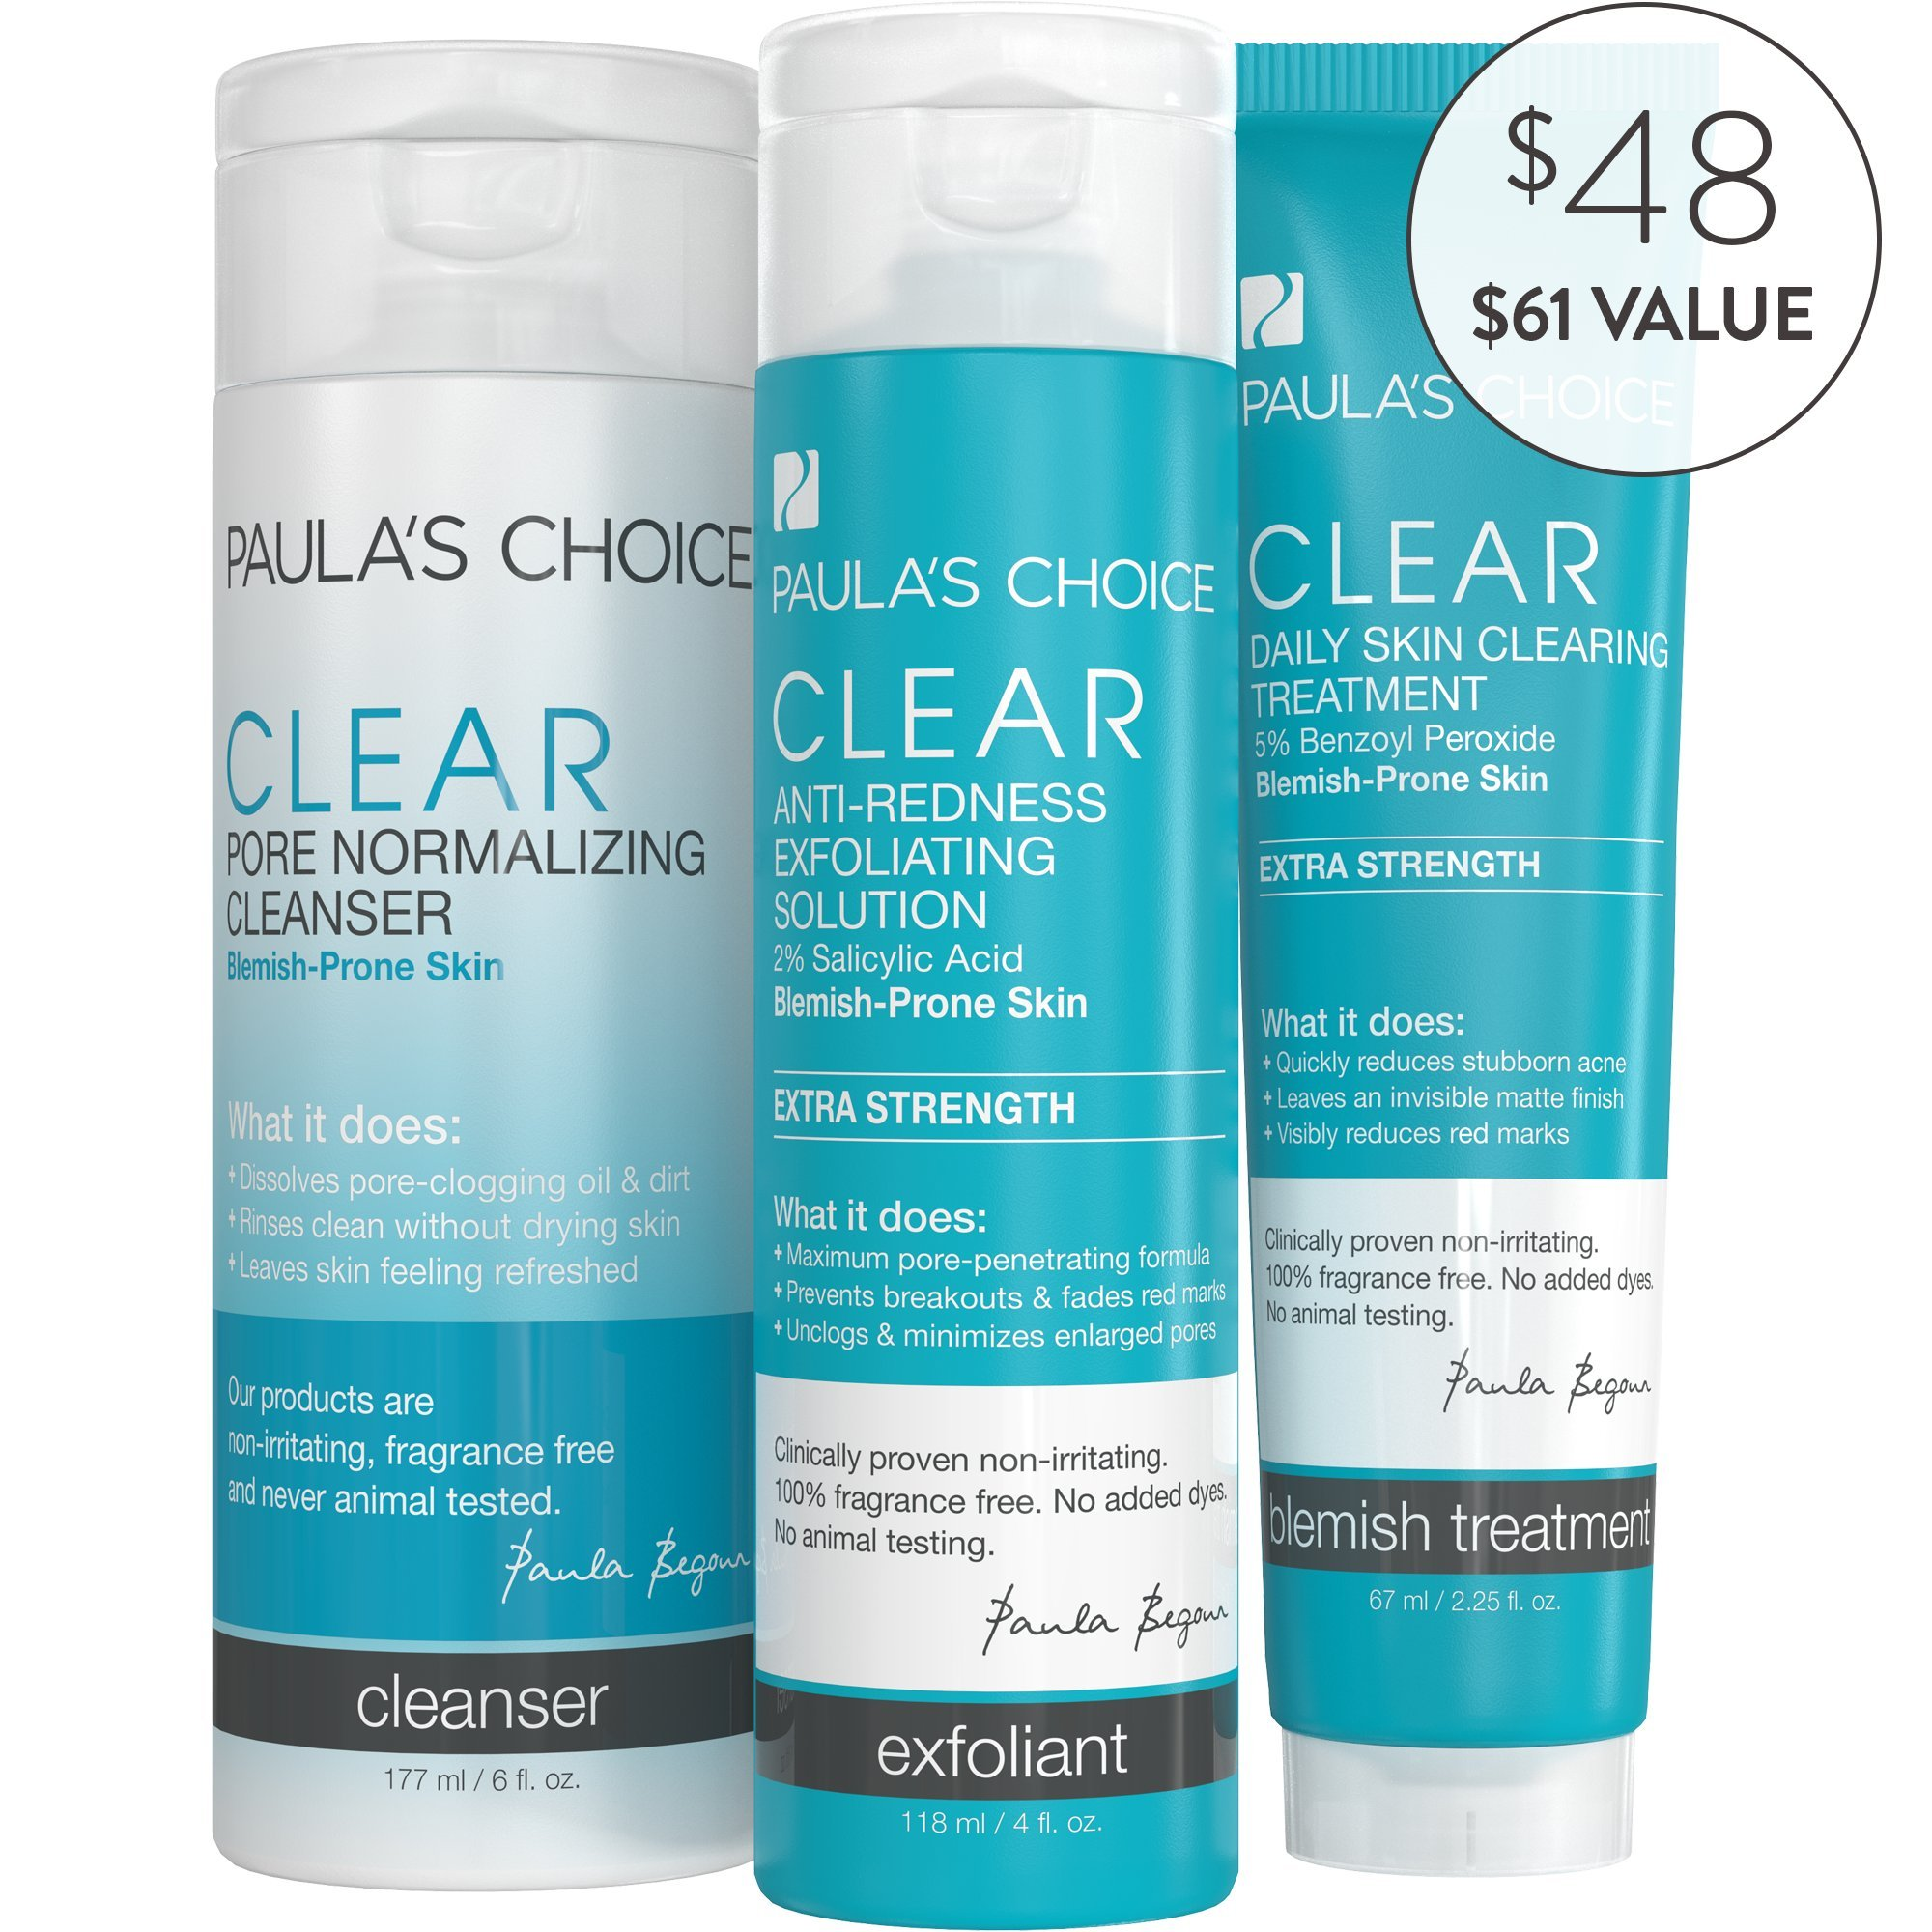 Paula's Choice-CLEAR Extra Strength Acne Kit-2% Salicylic Acid & 5% Benzoyl Peroxide-for Severe Facial Acne and Clogged Pores